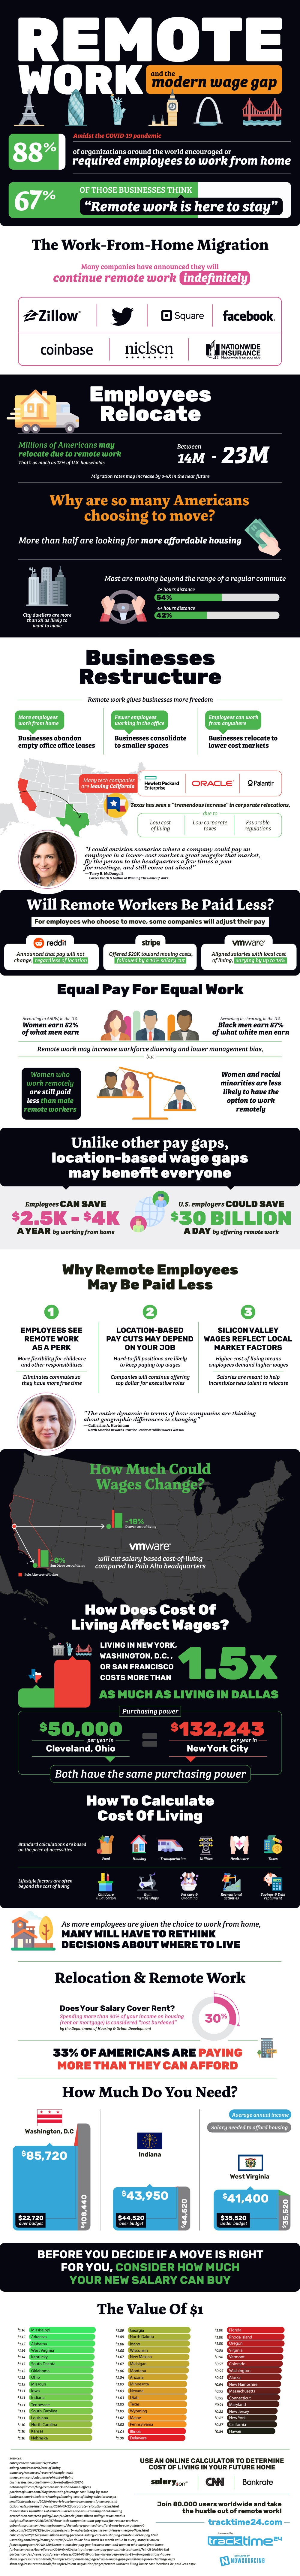 Remote Work and the Modern Wage Gap #Infographic